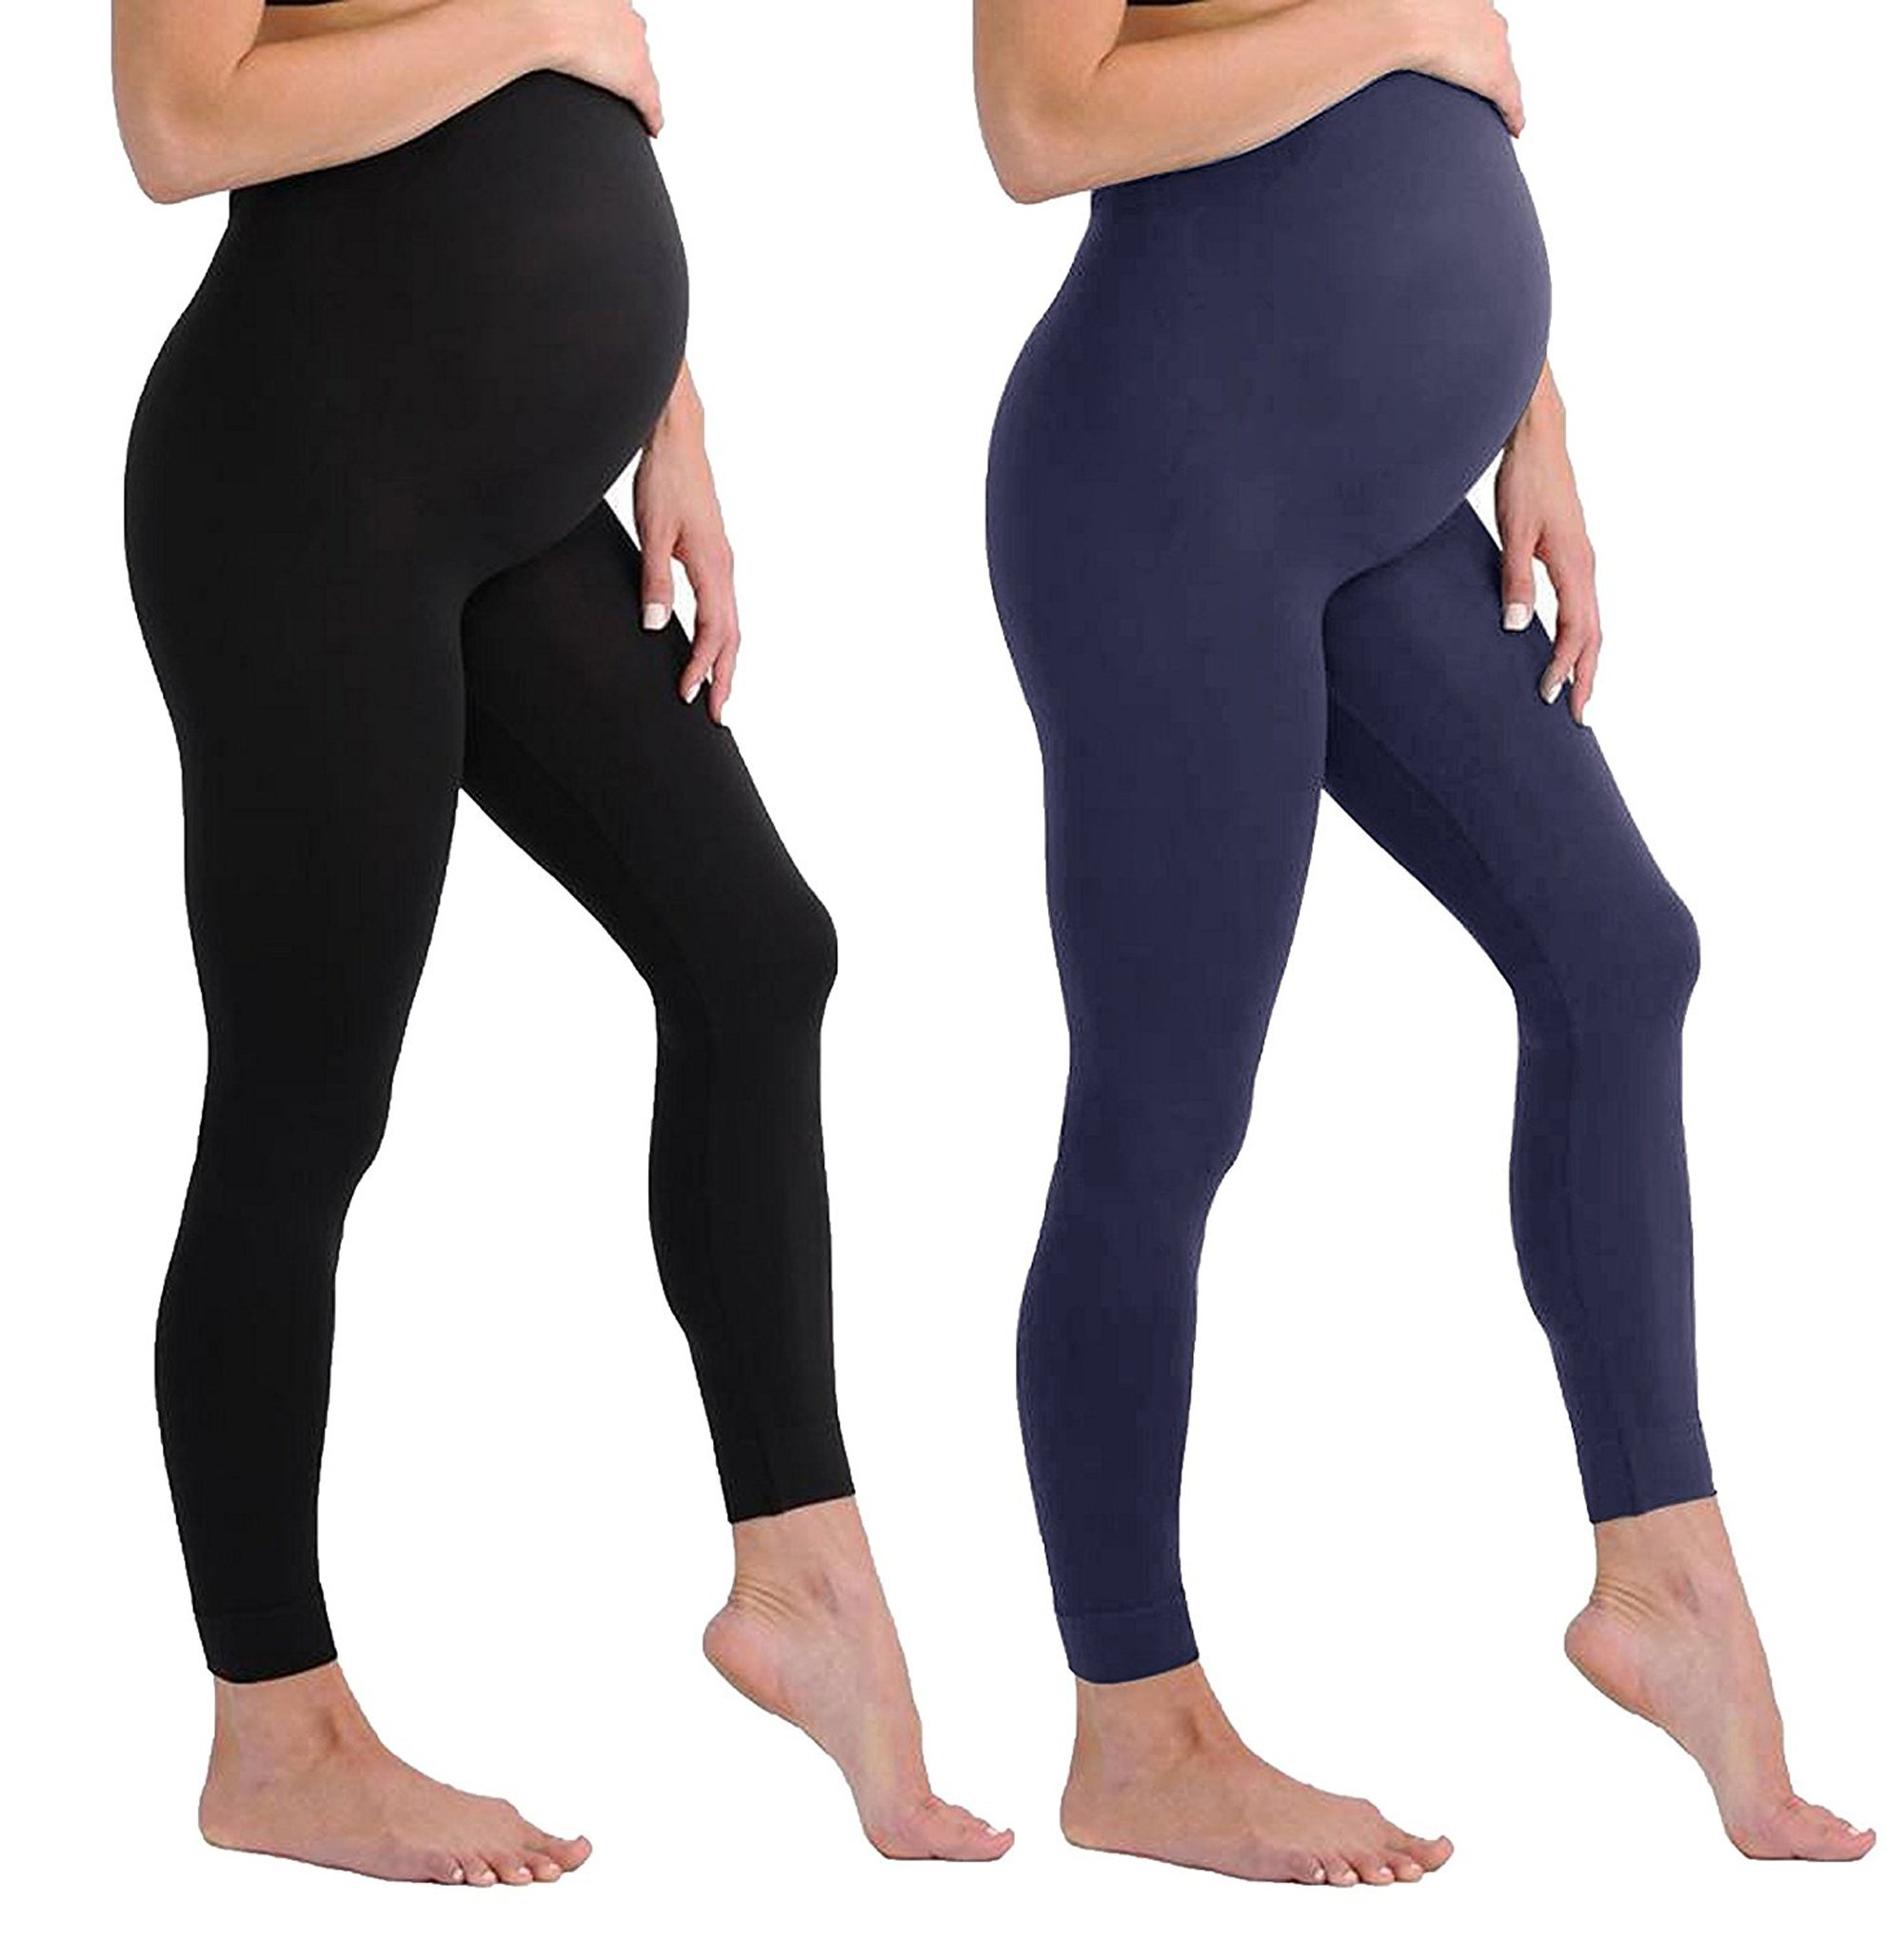 Touch Me Maternity Leggings Black Navy Grey Soft Solid Stretch Seamless Tights One Size Fits All Active Wear Yoga Gym Clothes (Maternity - One Size Fits All, 2 Pack of Black and Navy Leggings)